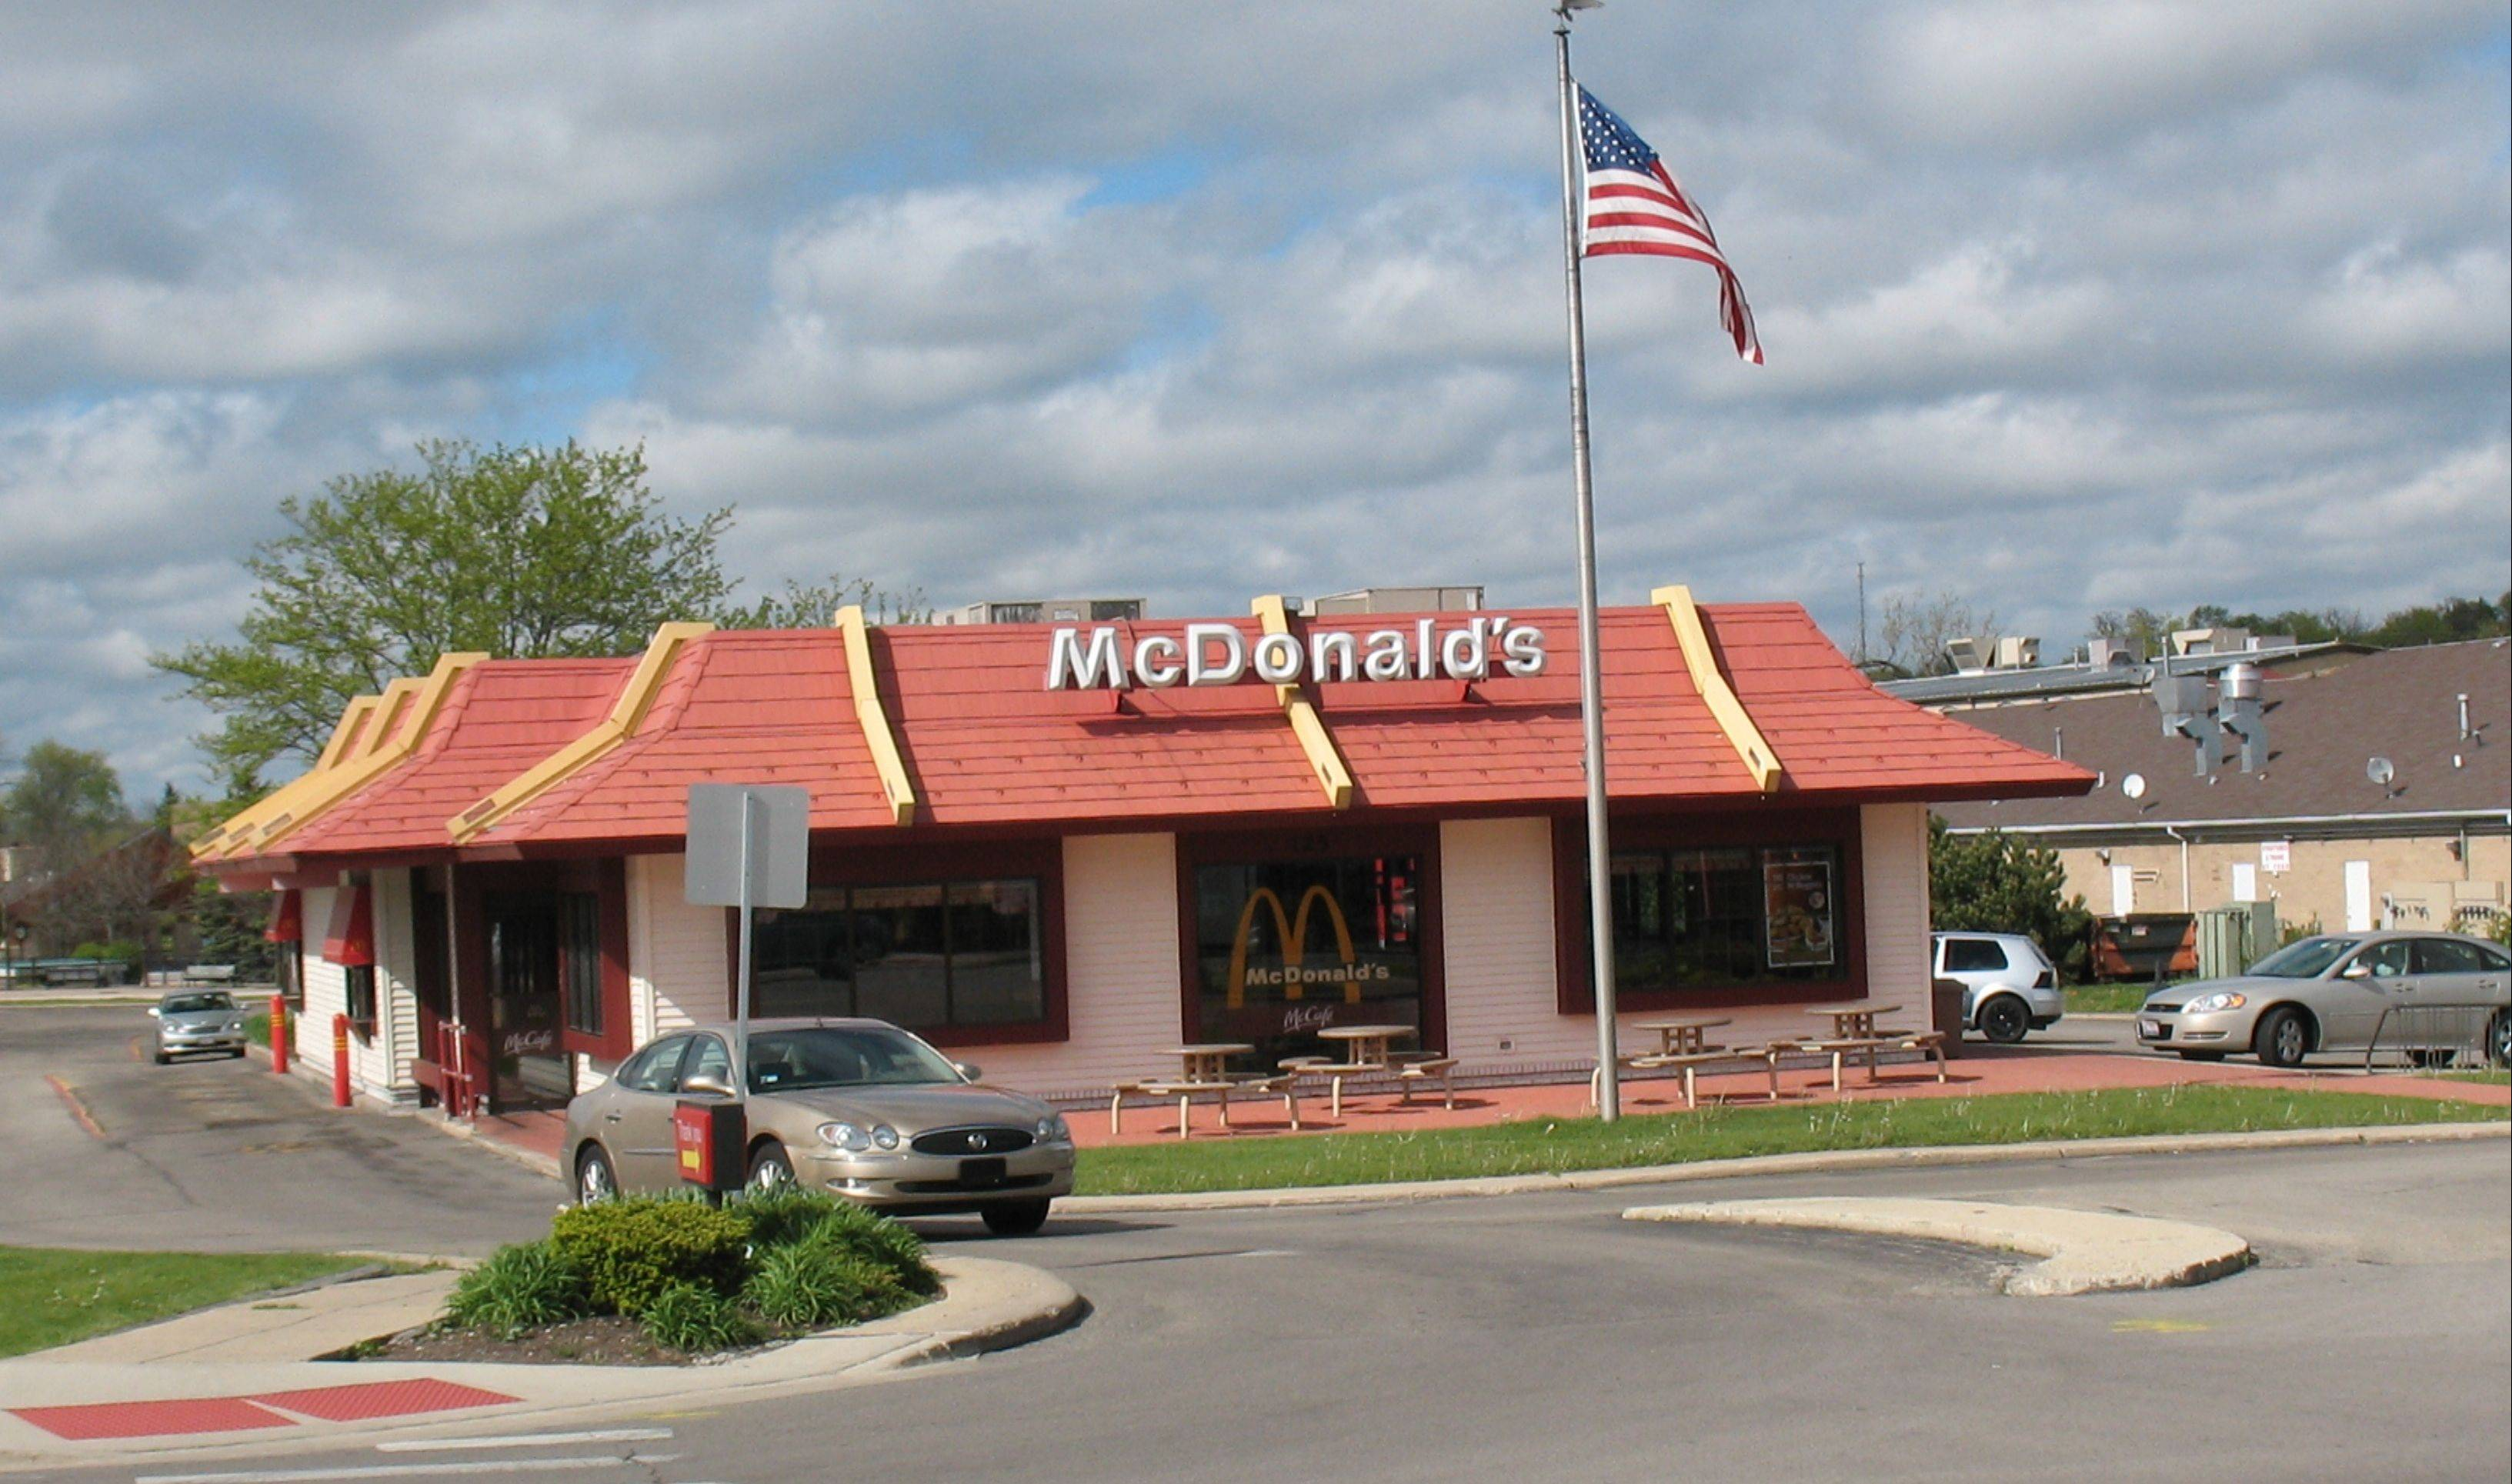 The Batavia City Council Monday granted permission for a double-lane drive-up once the current McDonald's at 125 W. Wilson St. is replaced.